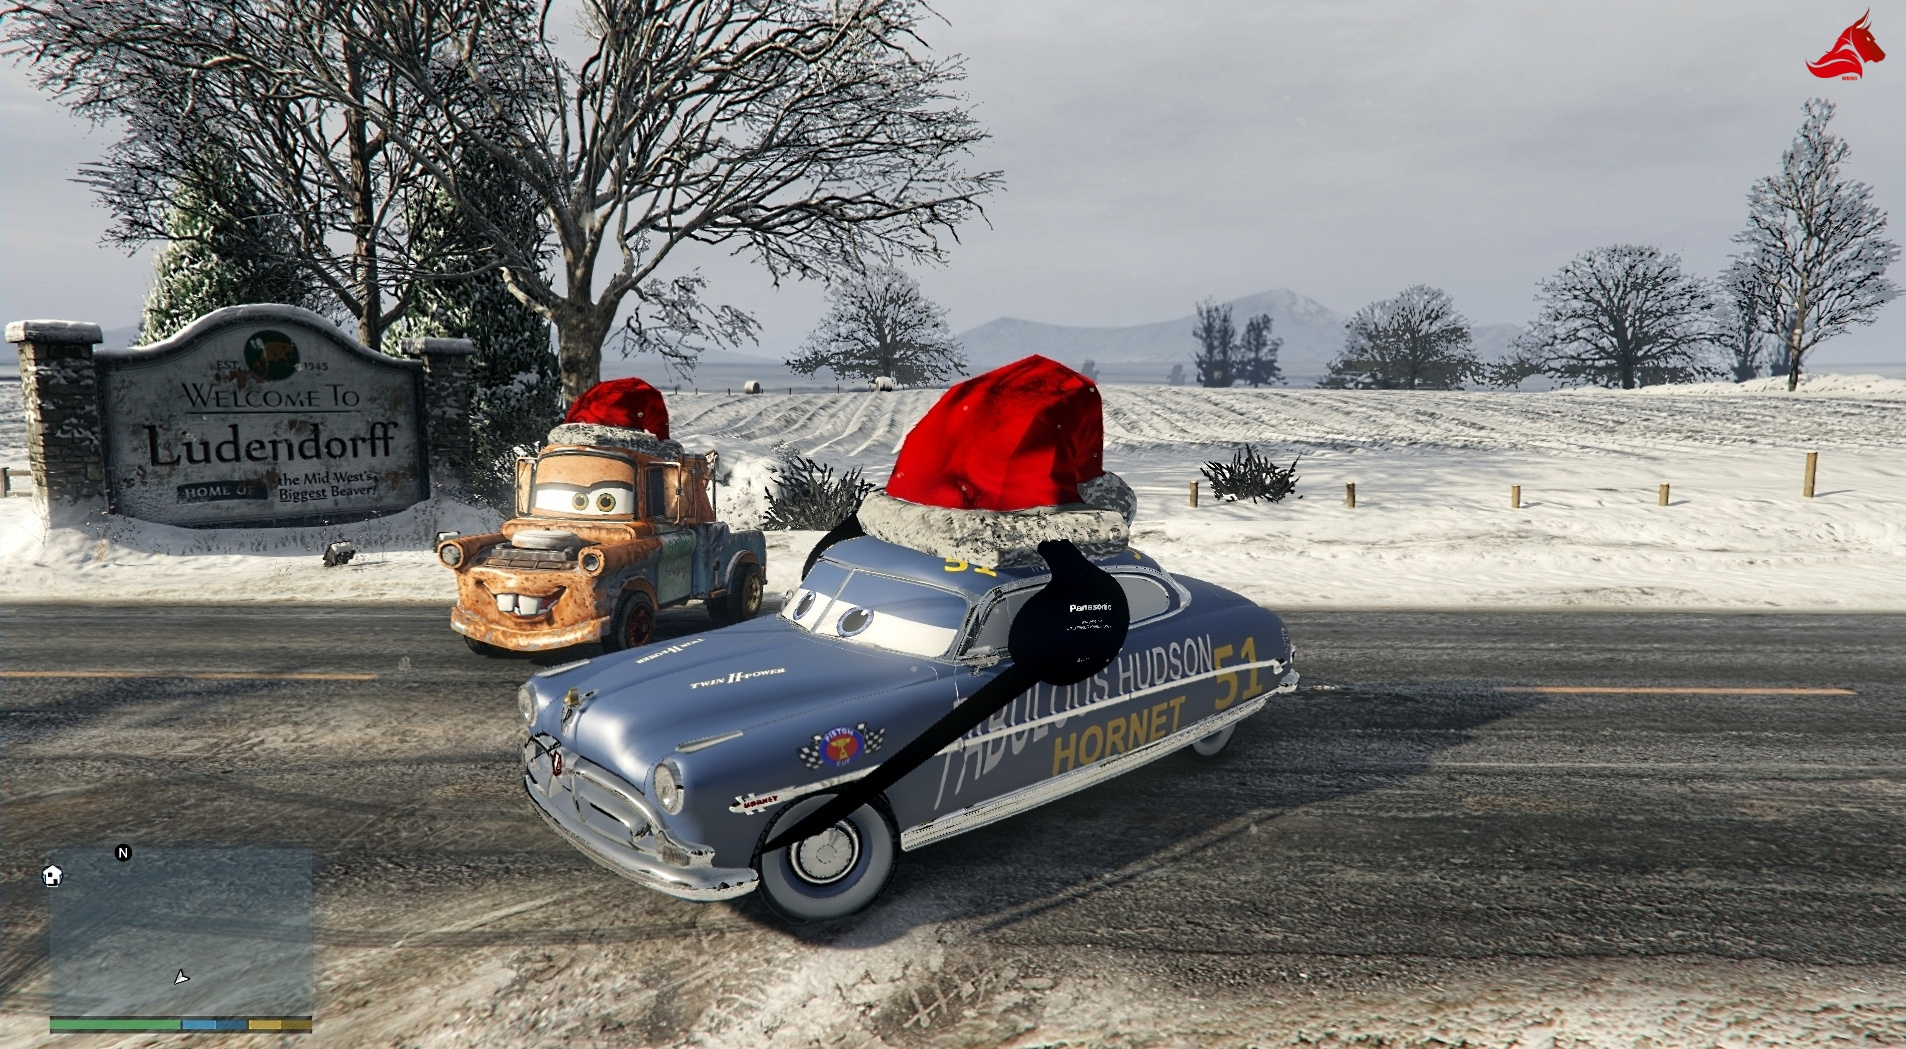 Bobby Swift Personnage Cars as well Cm Disney Pixar Cars Toy Lightning Mcqueen Mater Storm Jackson Dinoco Cruz   X together with Affiche Cars X besides Maxresdefault further Hqdefault. on 3 cruz ramirez cars